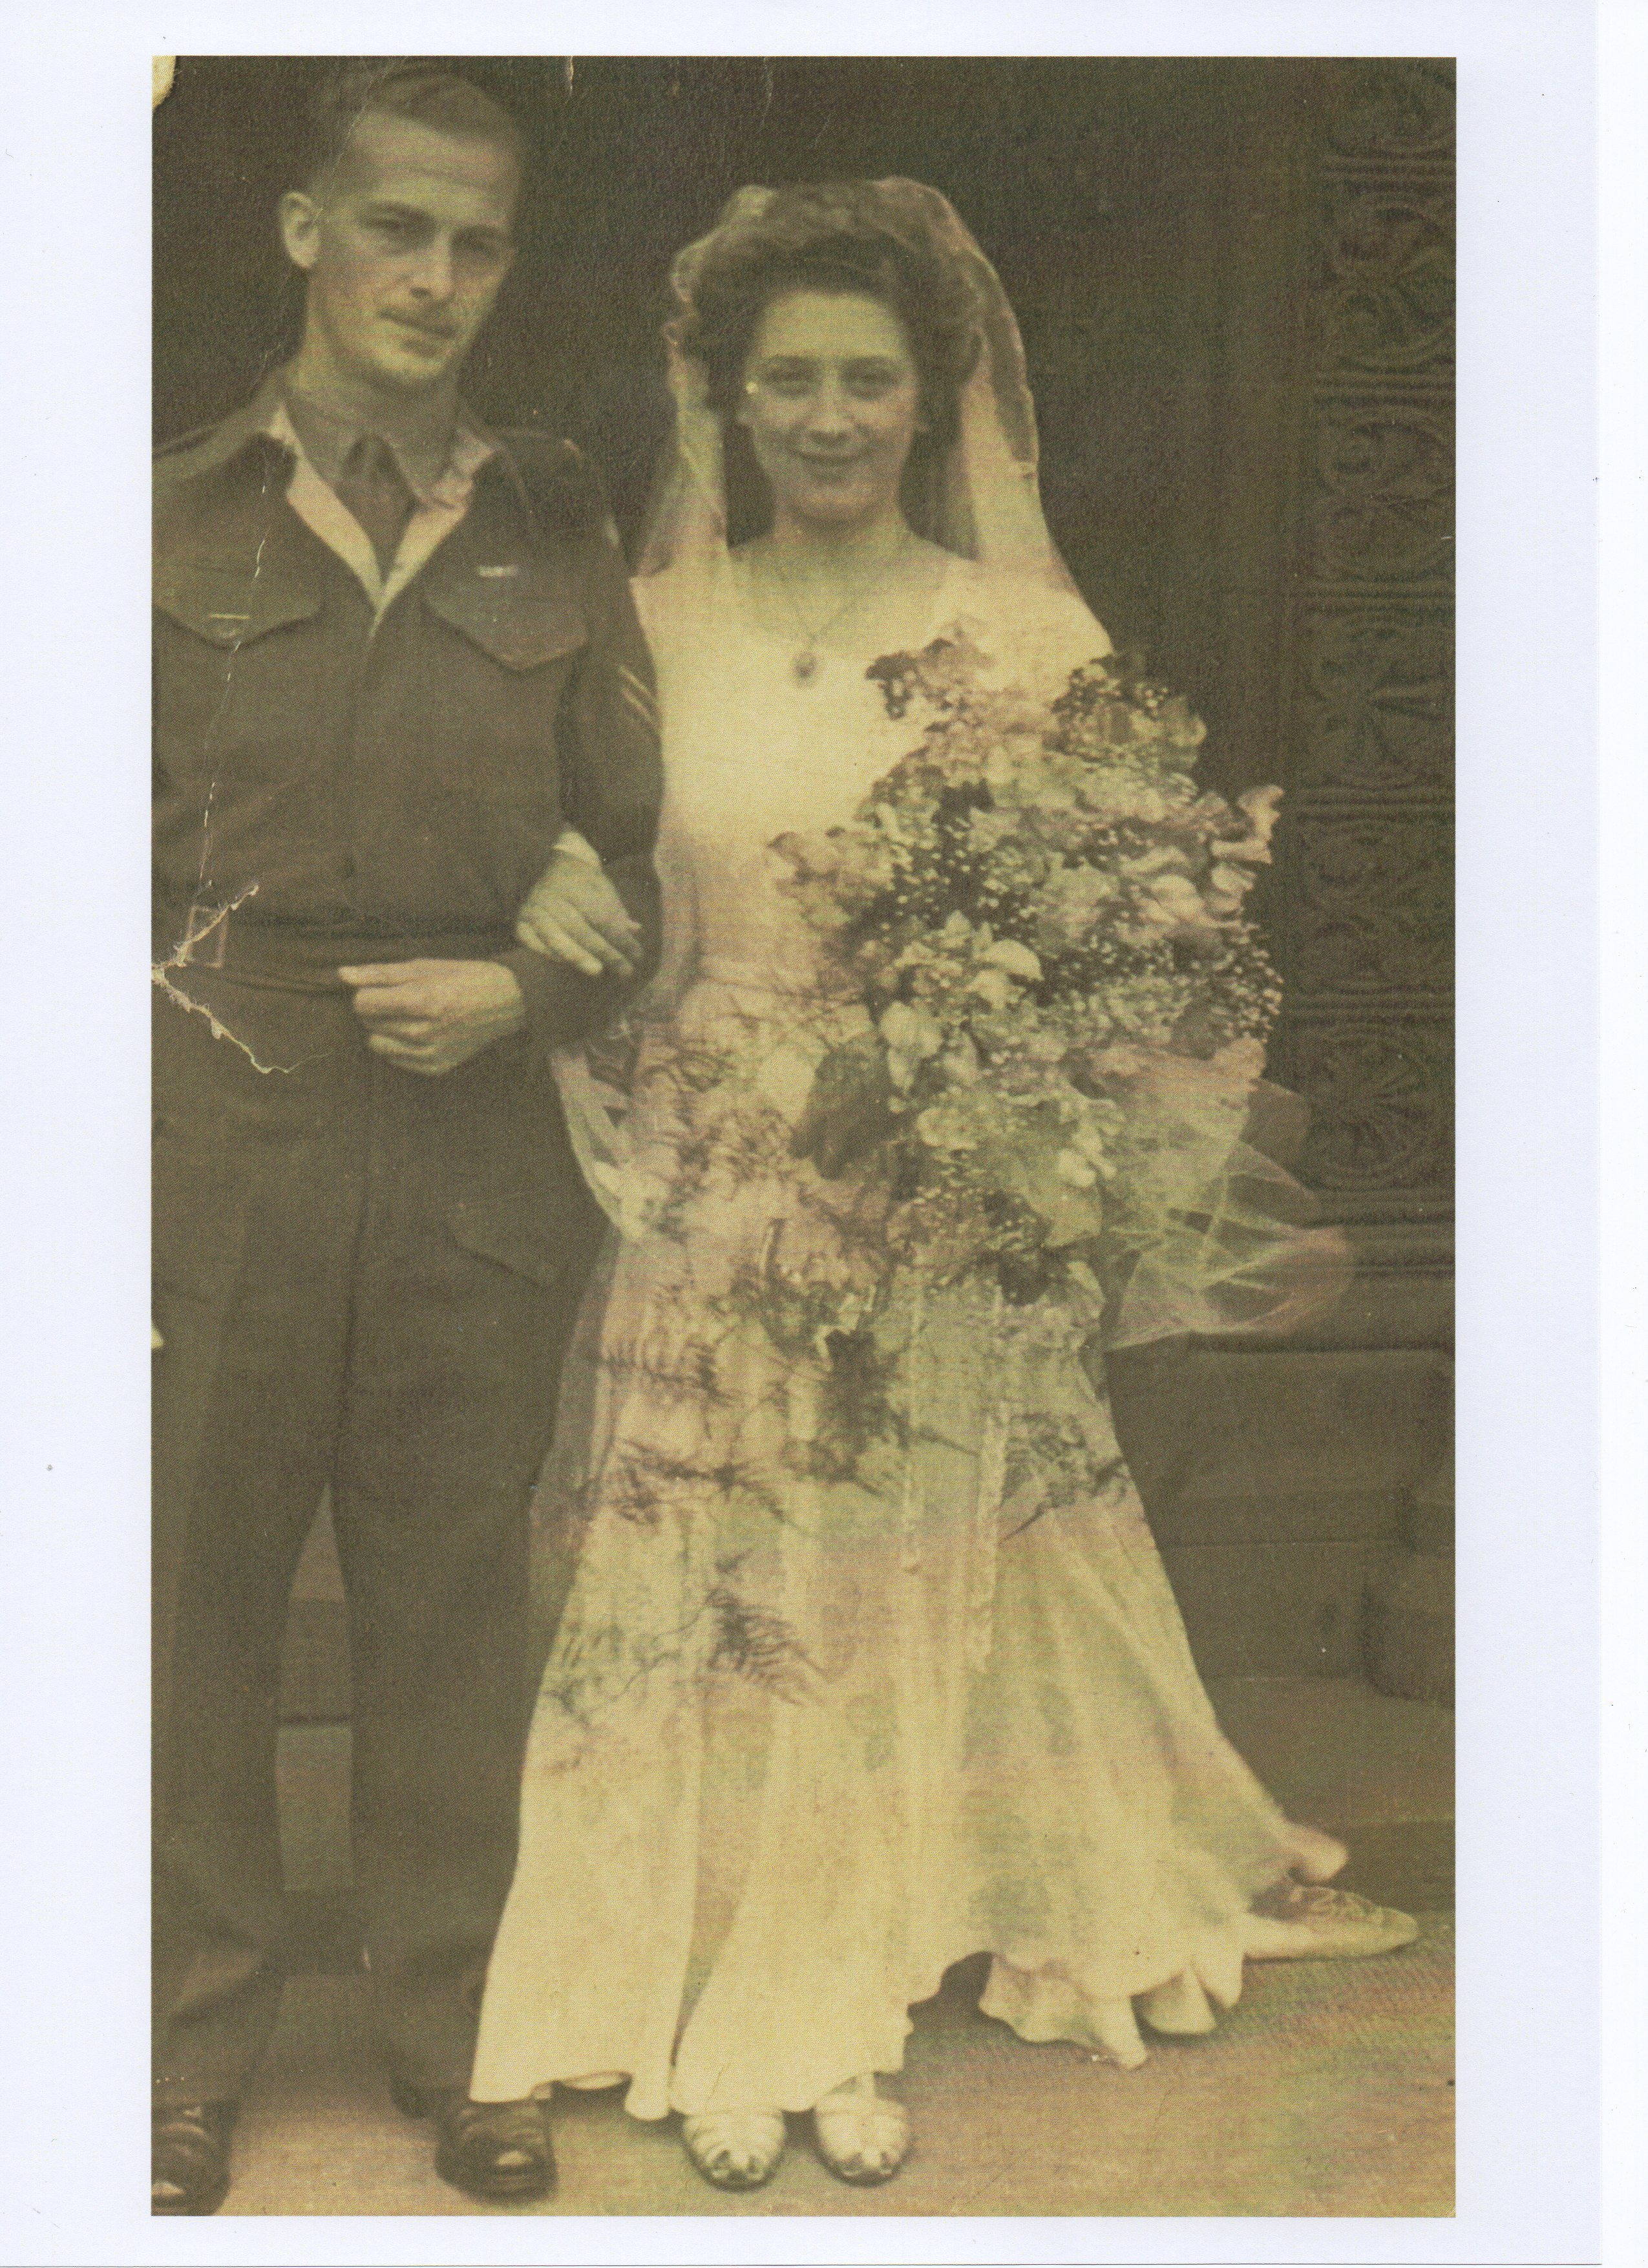 Alastair W. Forbes - Mum and Dad's Wedding Day.